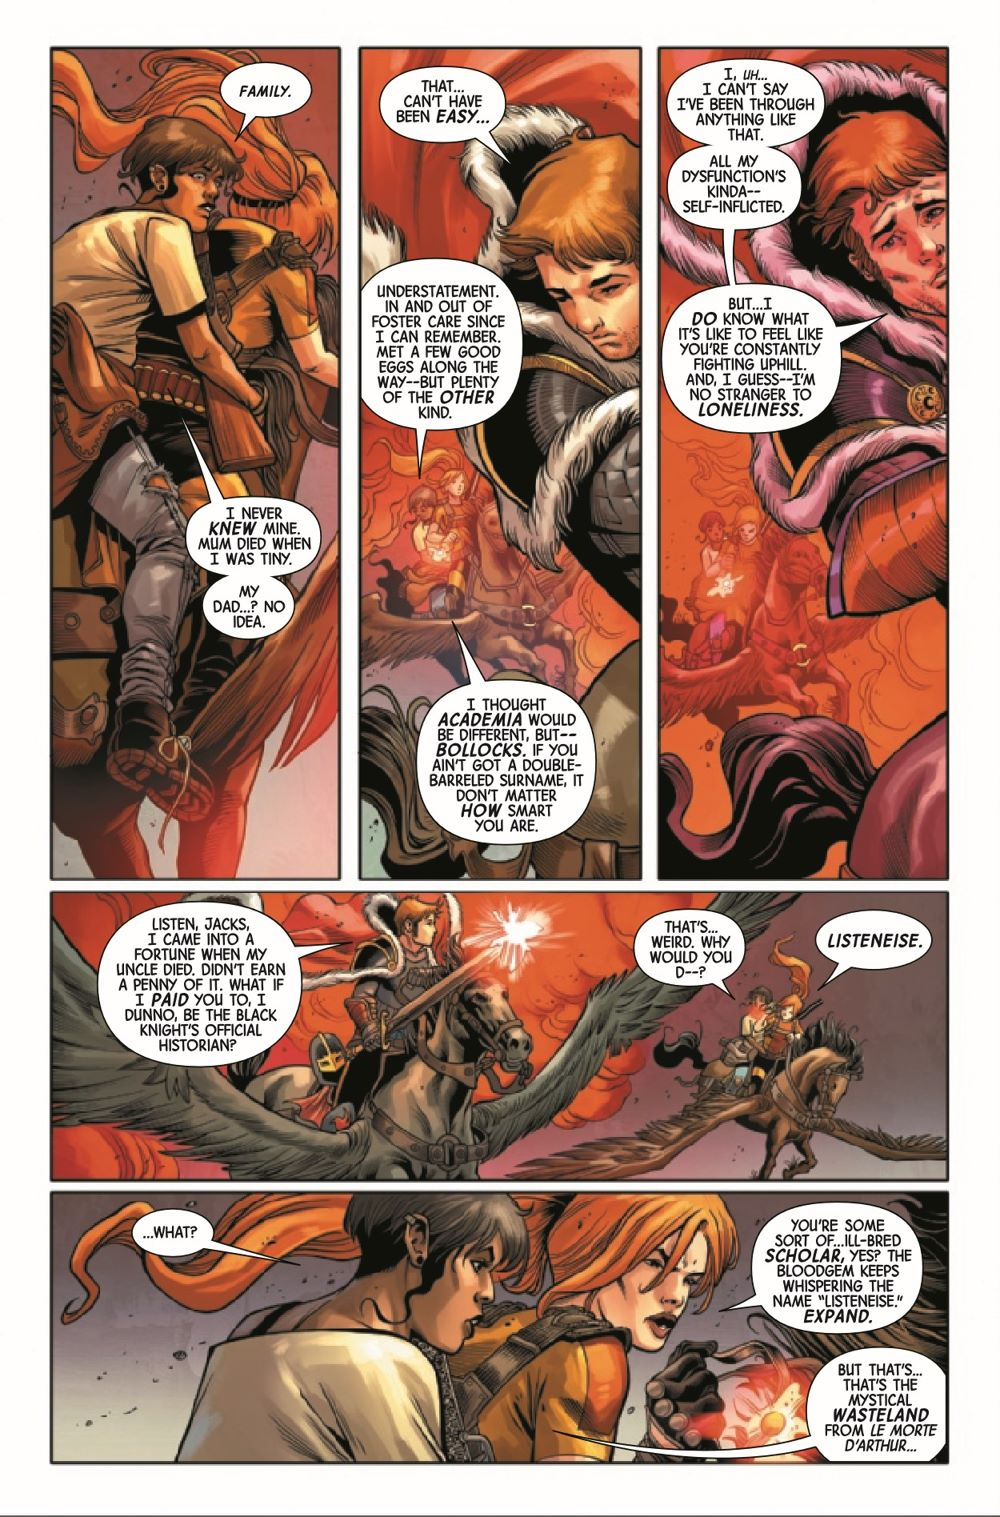 BLKKNGHTCURSE2021003_Preview-2 ComicList Previews: BLACK KNIGHT CURSE OF THE EBONY BLADE #3 (OF 5)